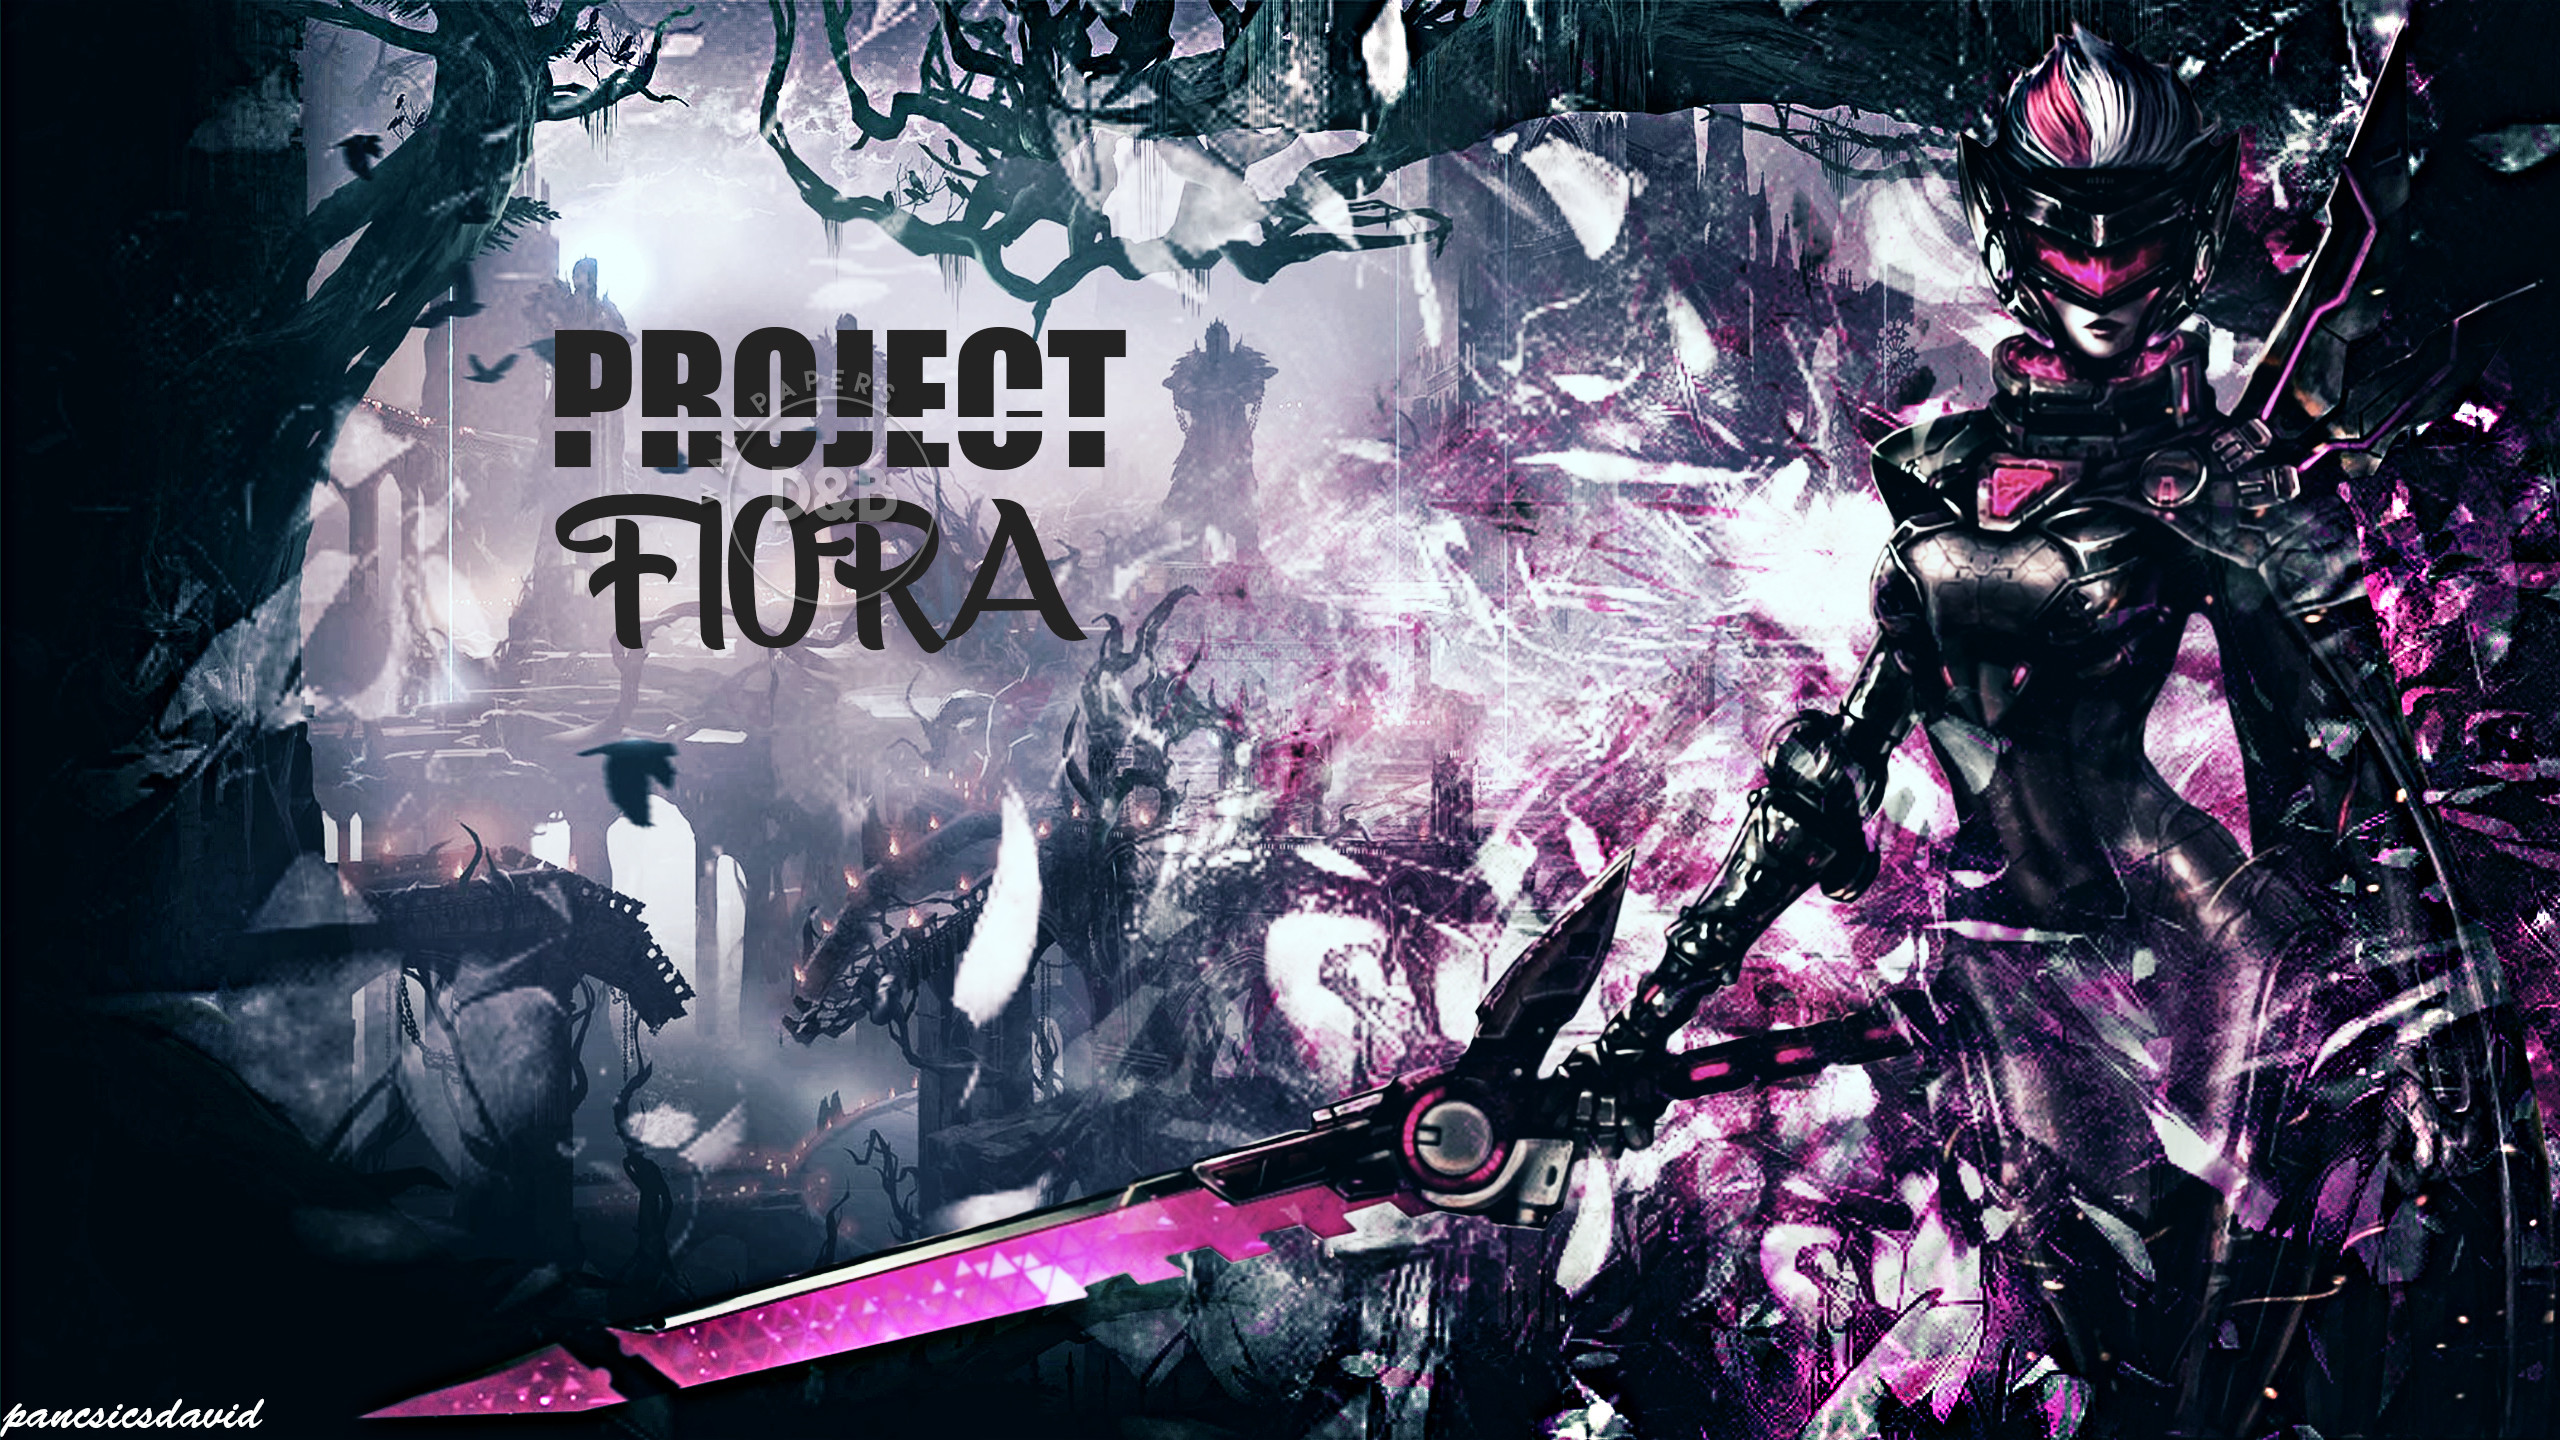 2560x1440 ... League Of Legends - PROJECT Fiora wallpaper by pancsicsdavid